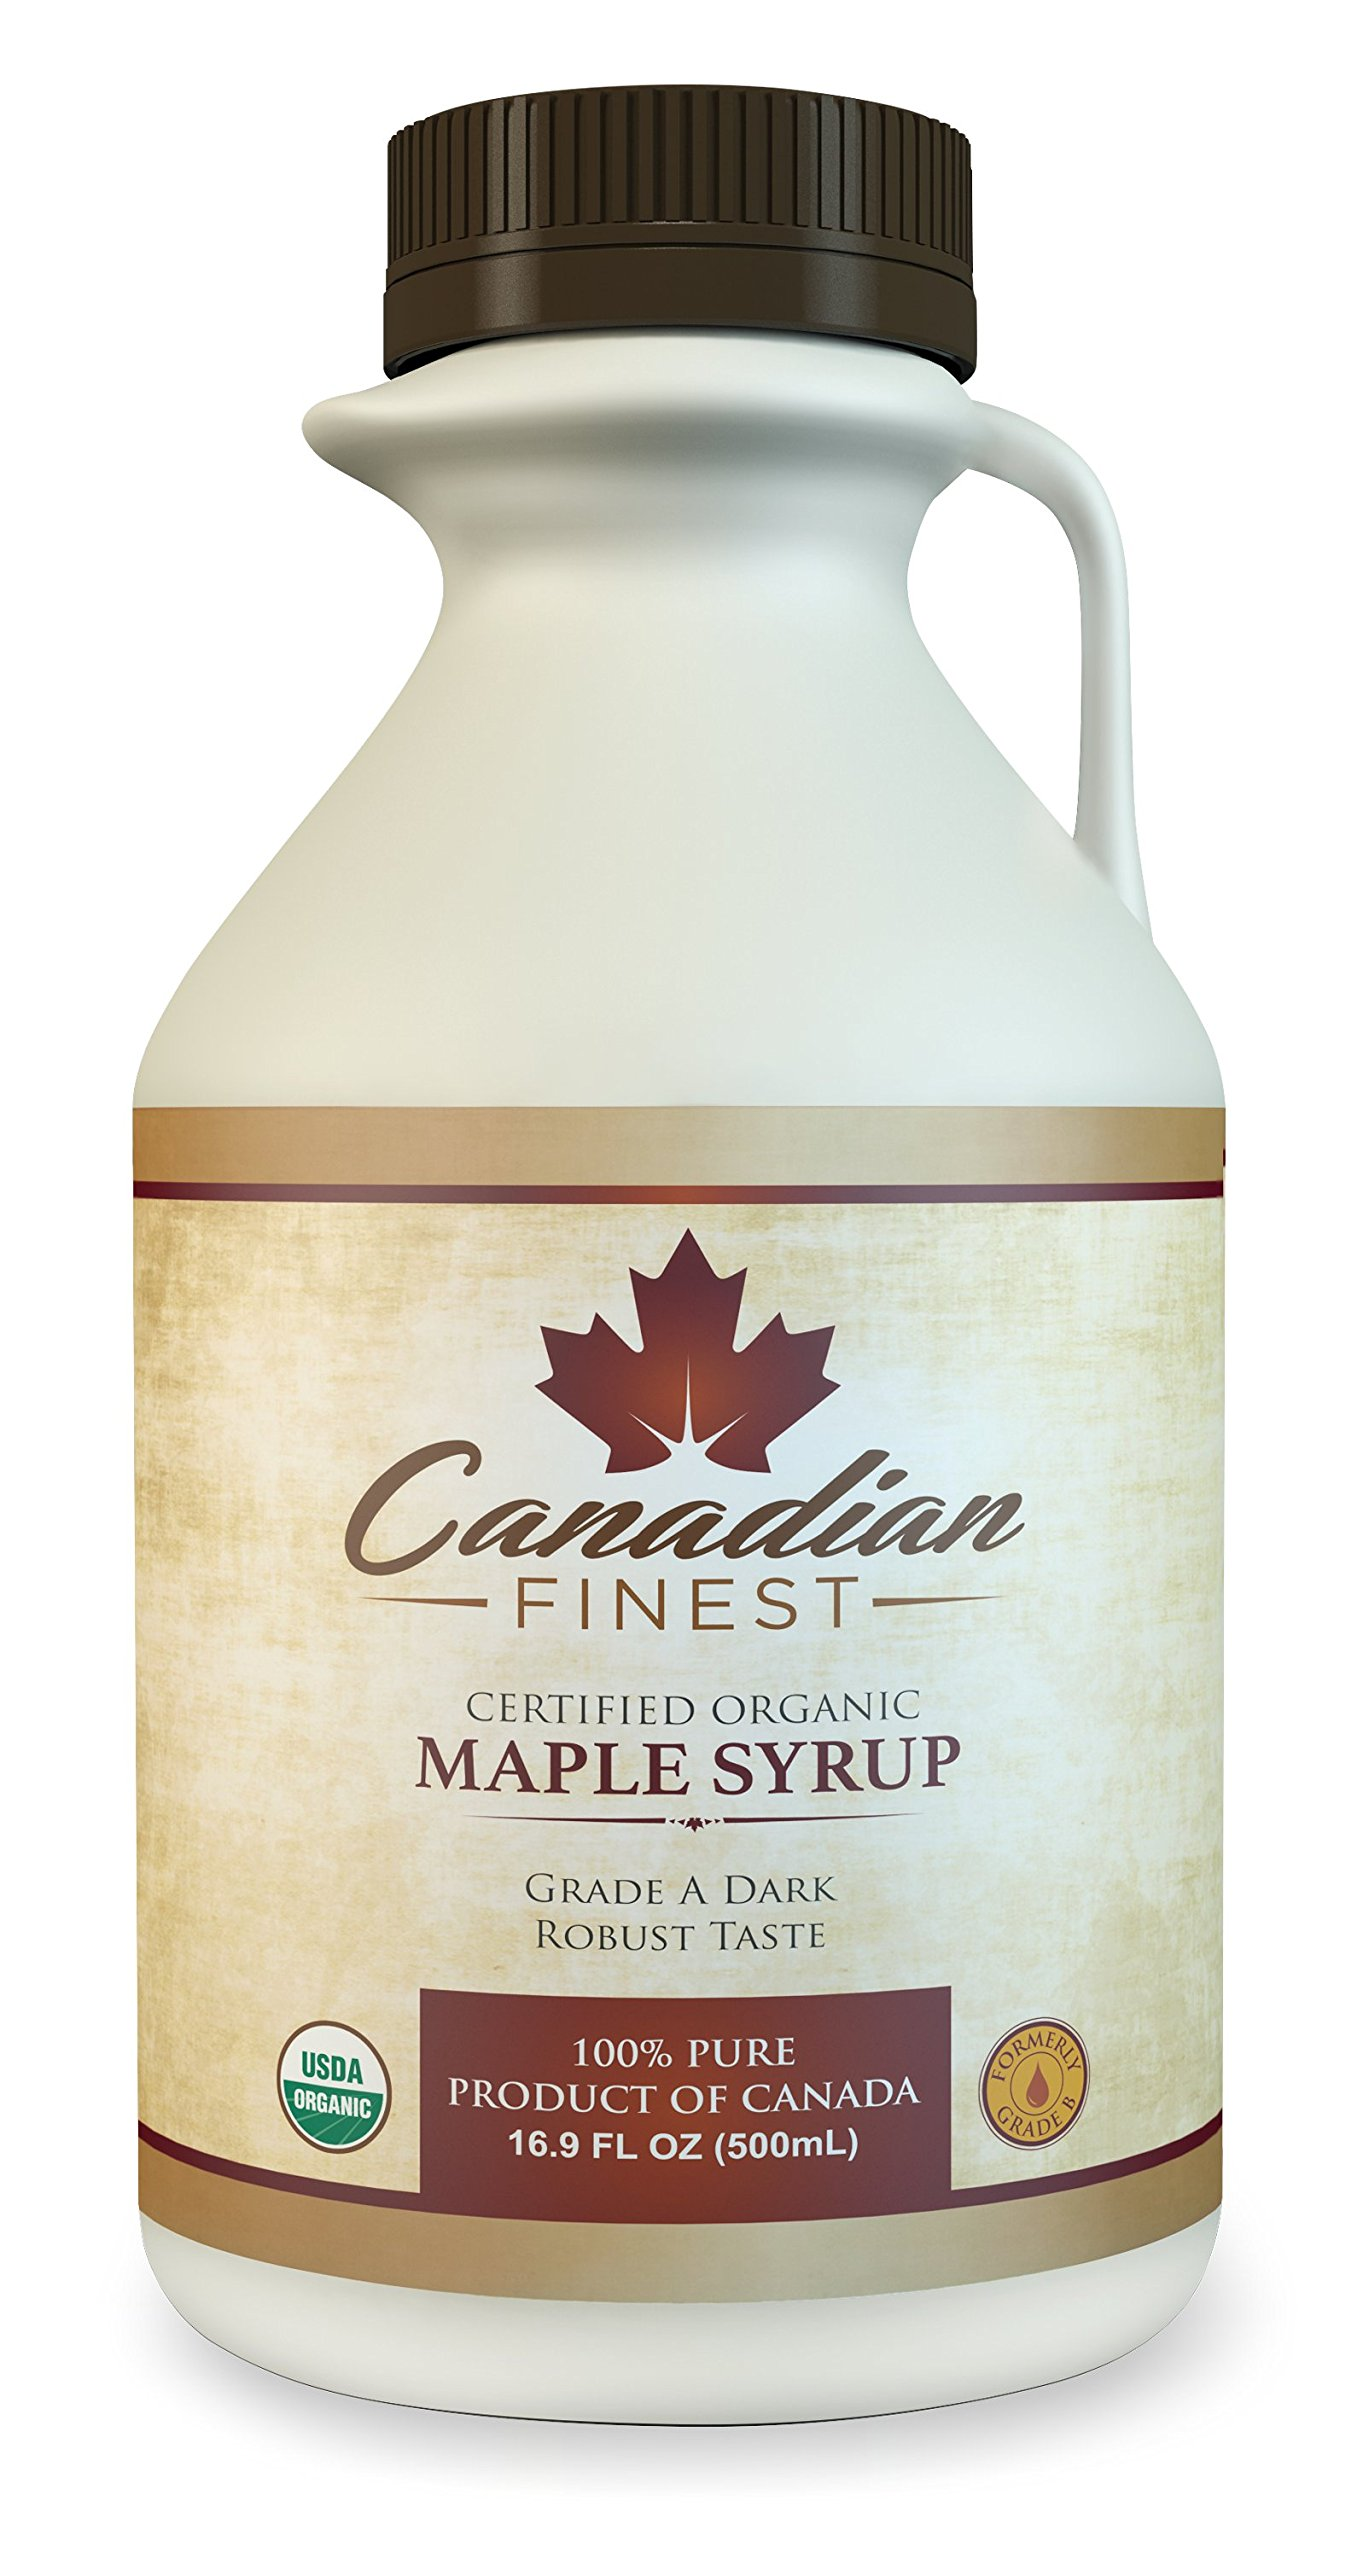 4a45d0ce4d9 Get Quotations · CANADIAN FINEST Maple Syrup